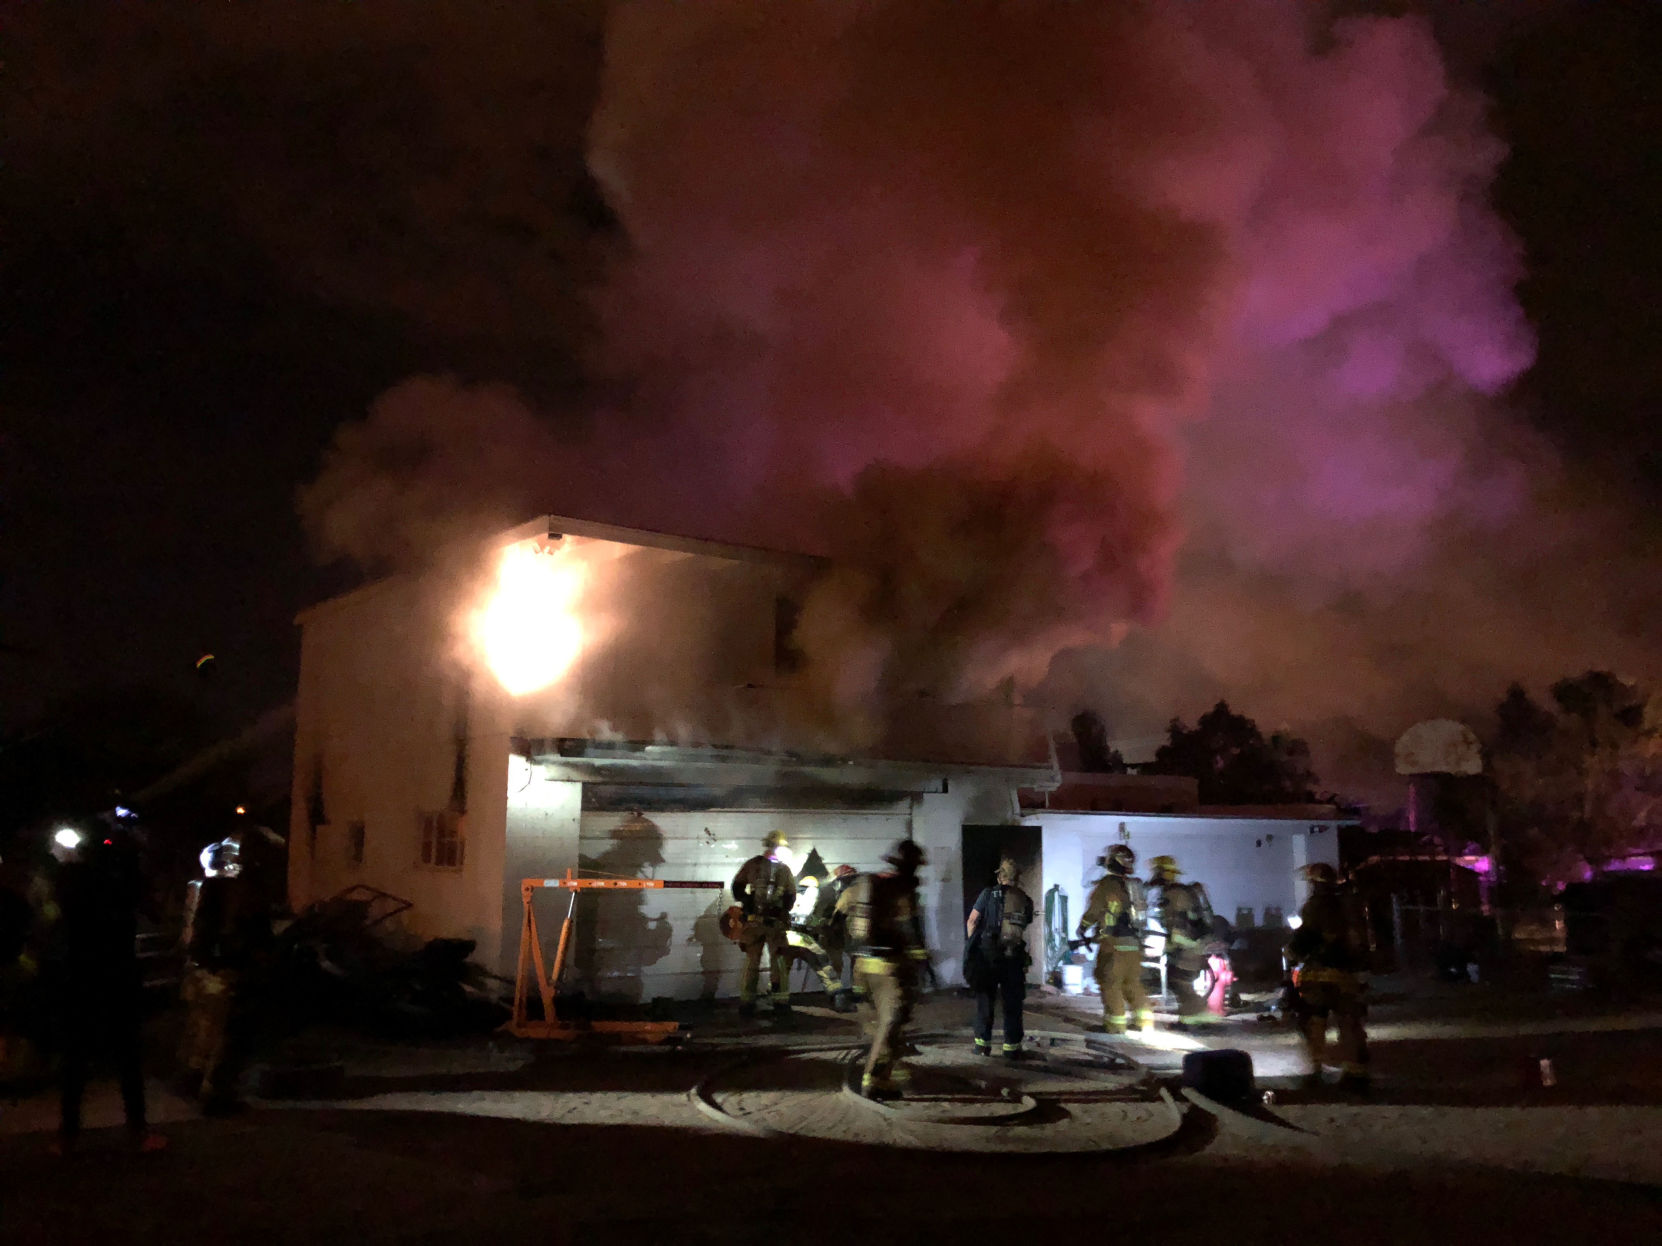 Passerby alerts authorities to midtown Tucson fire | Tucson.com